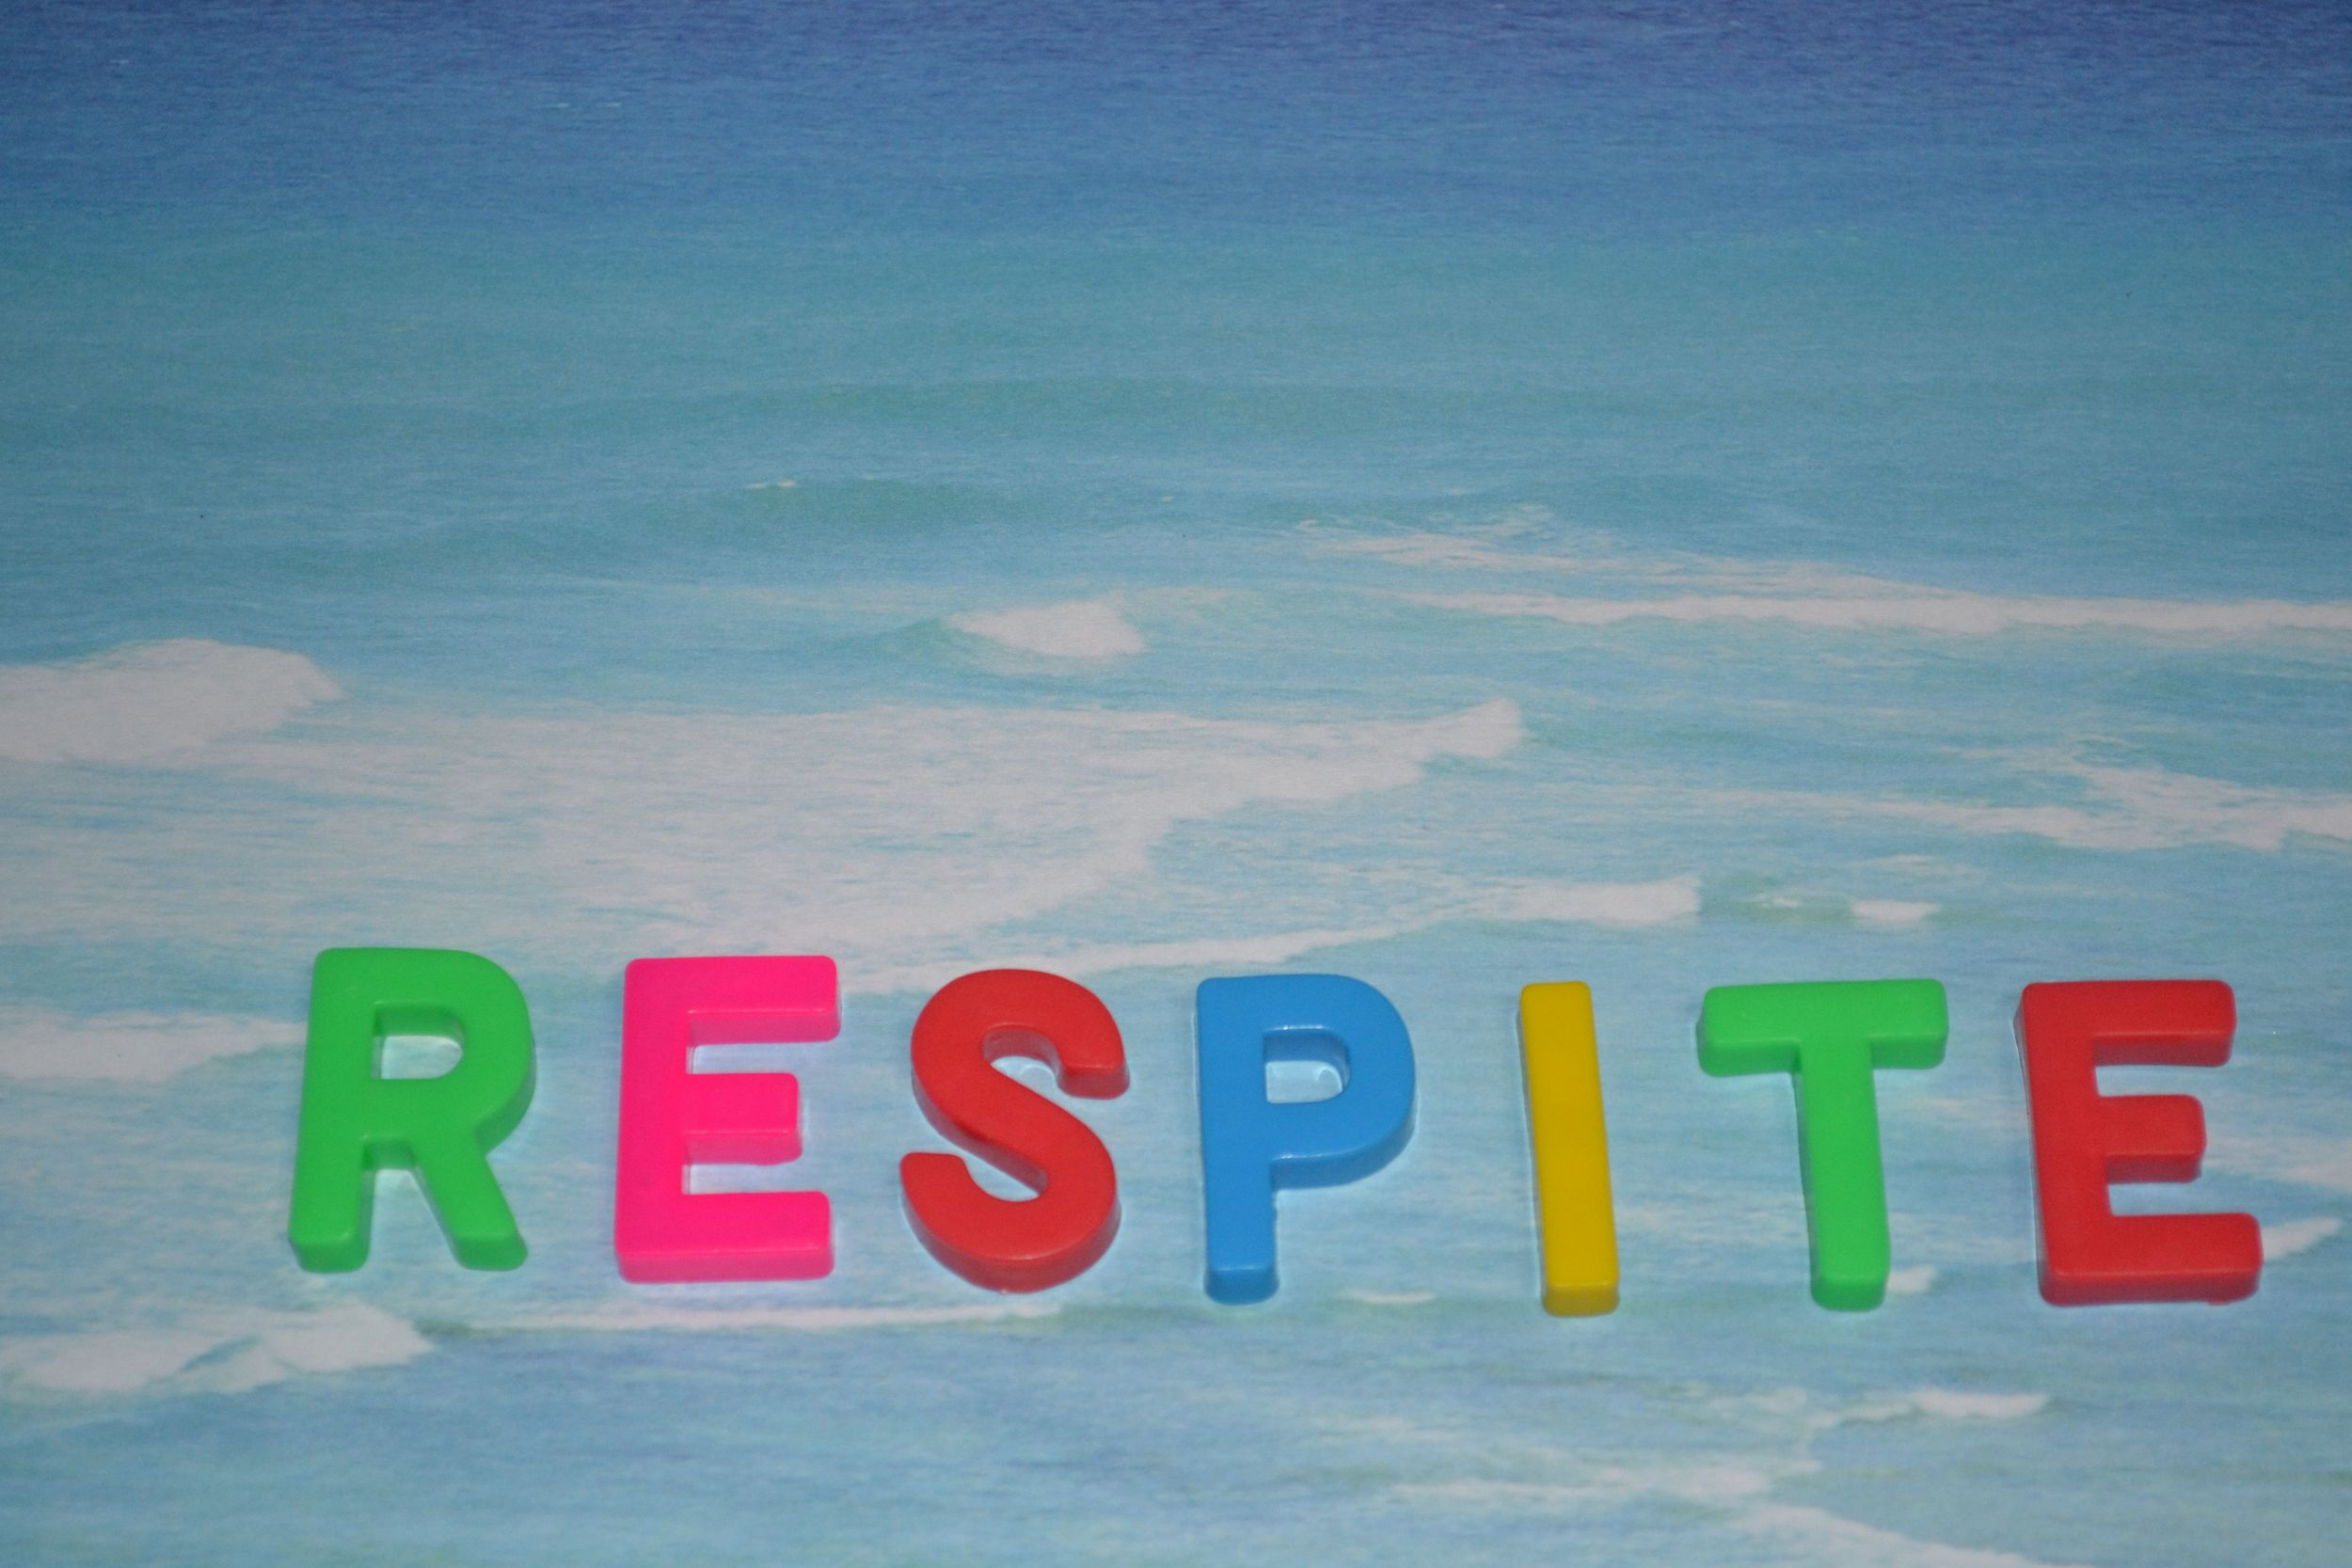 Respite - a short period of rest or relief from something difficult